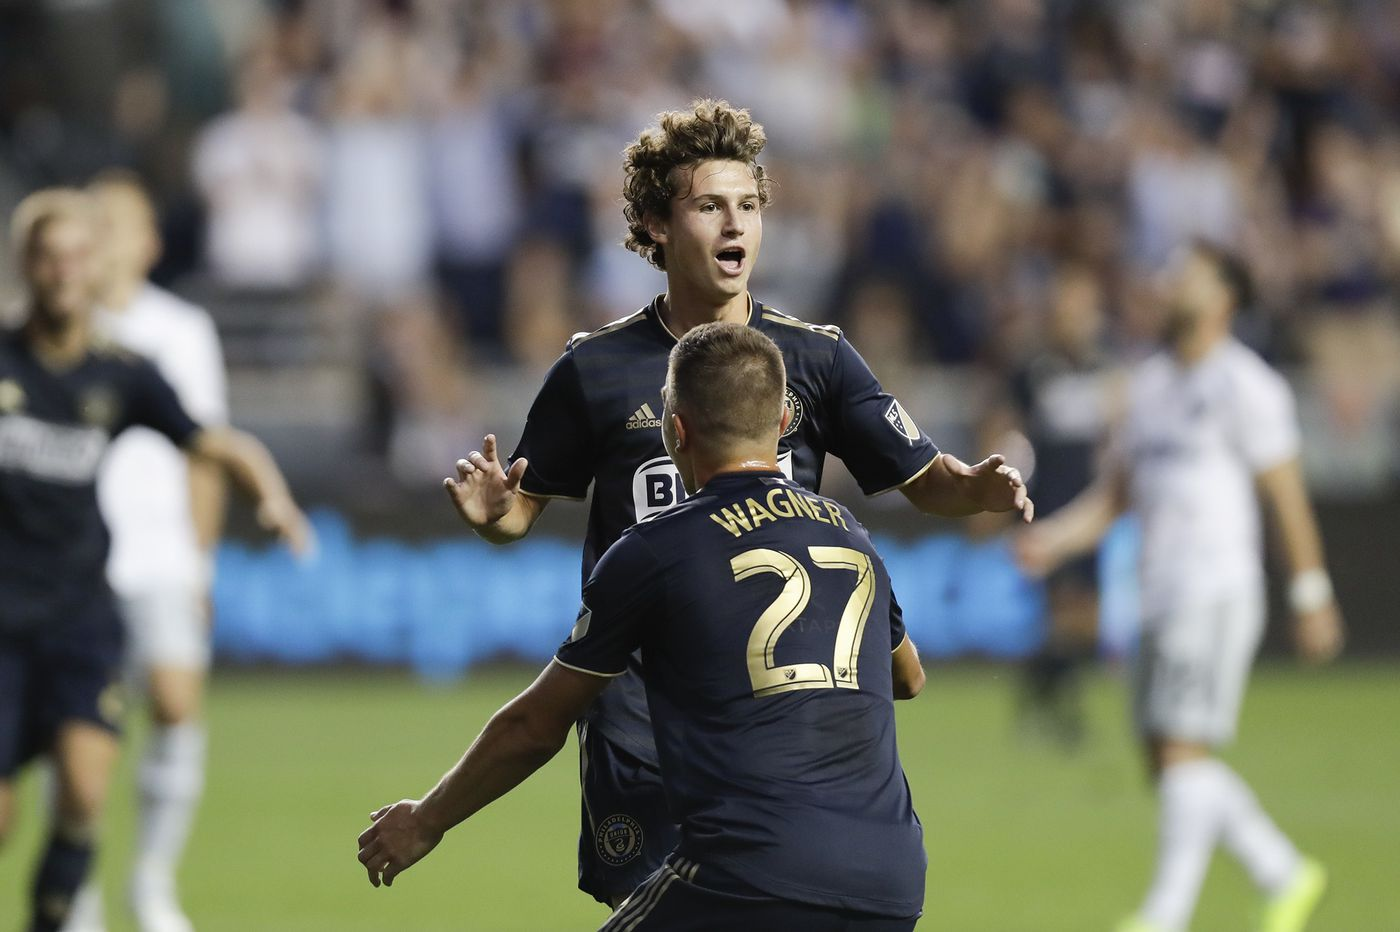 Union's Brenden Aaronson an MLS rookie of the year finalist; Jim Curtin up for coach of the year